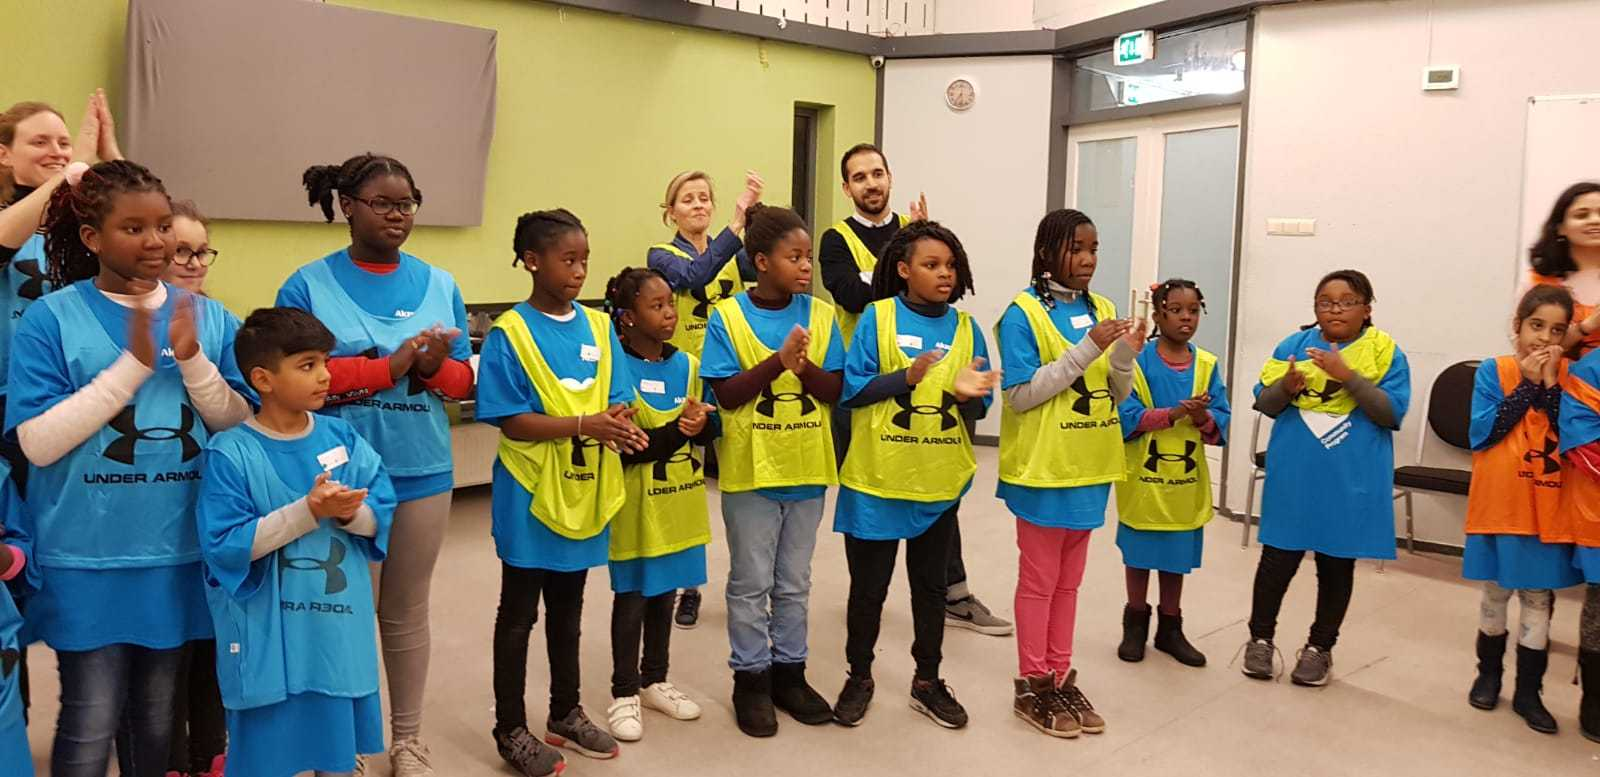 Dinsdag 13 november – AkzoNobel's Community Program